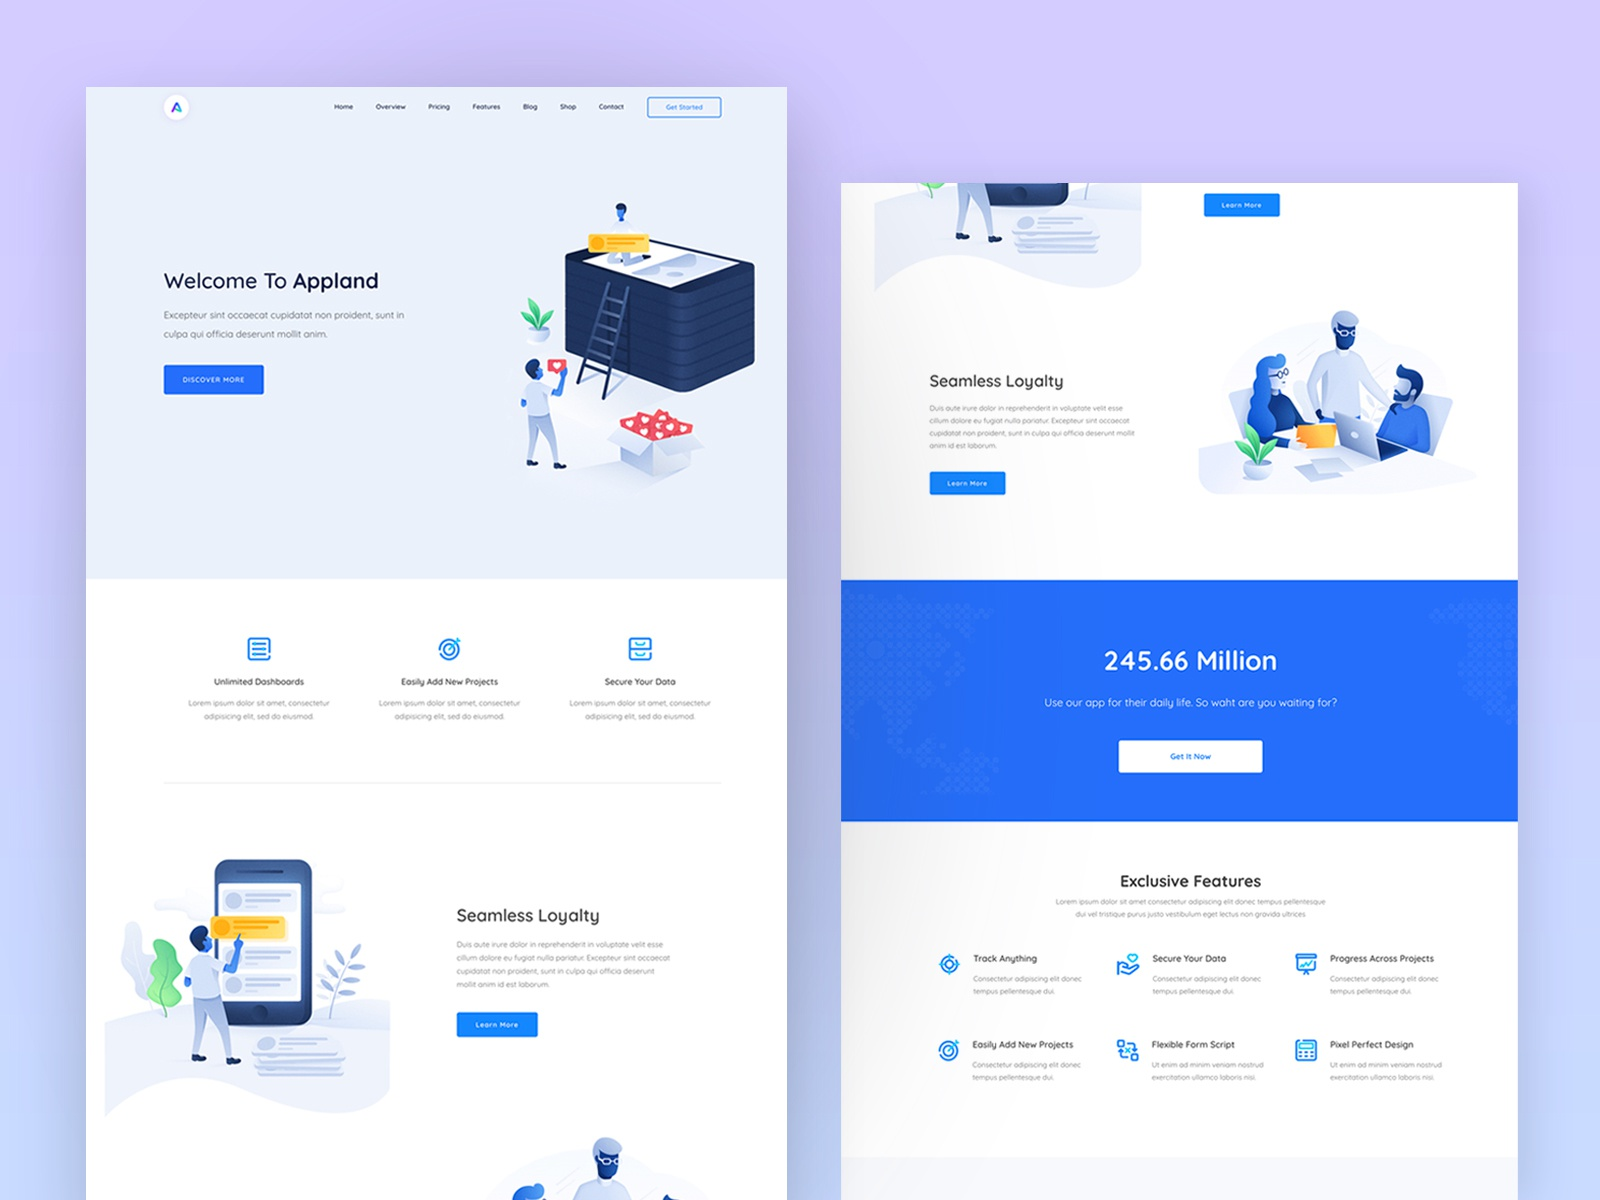 Appland app software saas startup showcase theme landing page design by droitlab